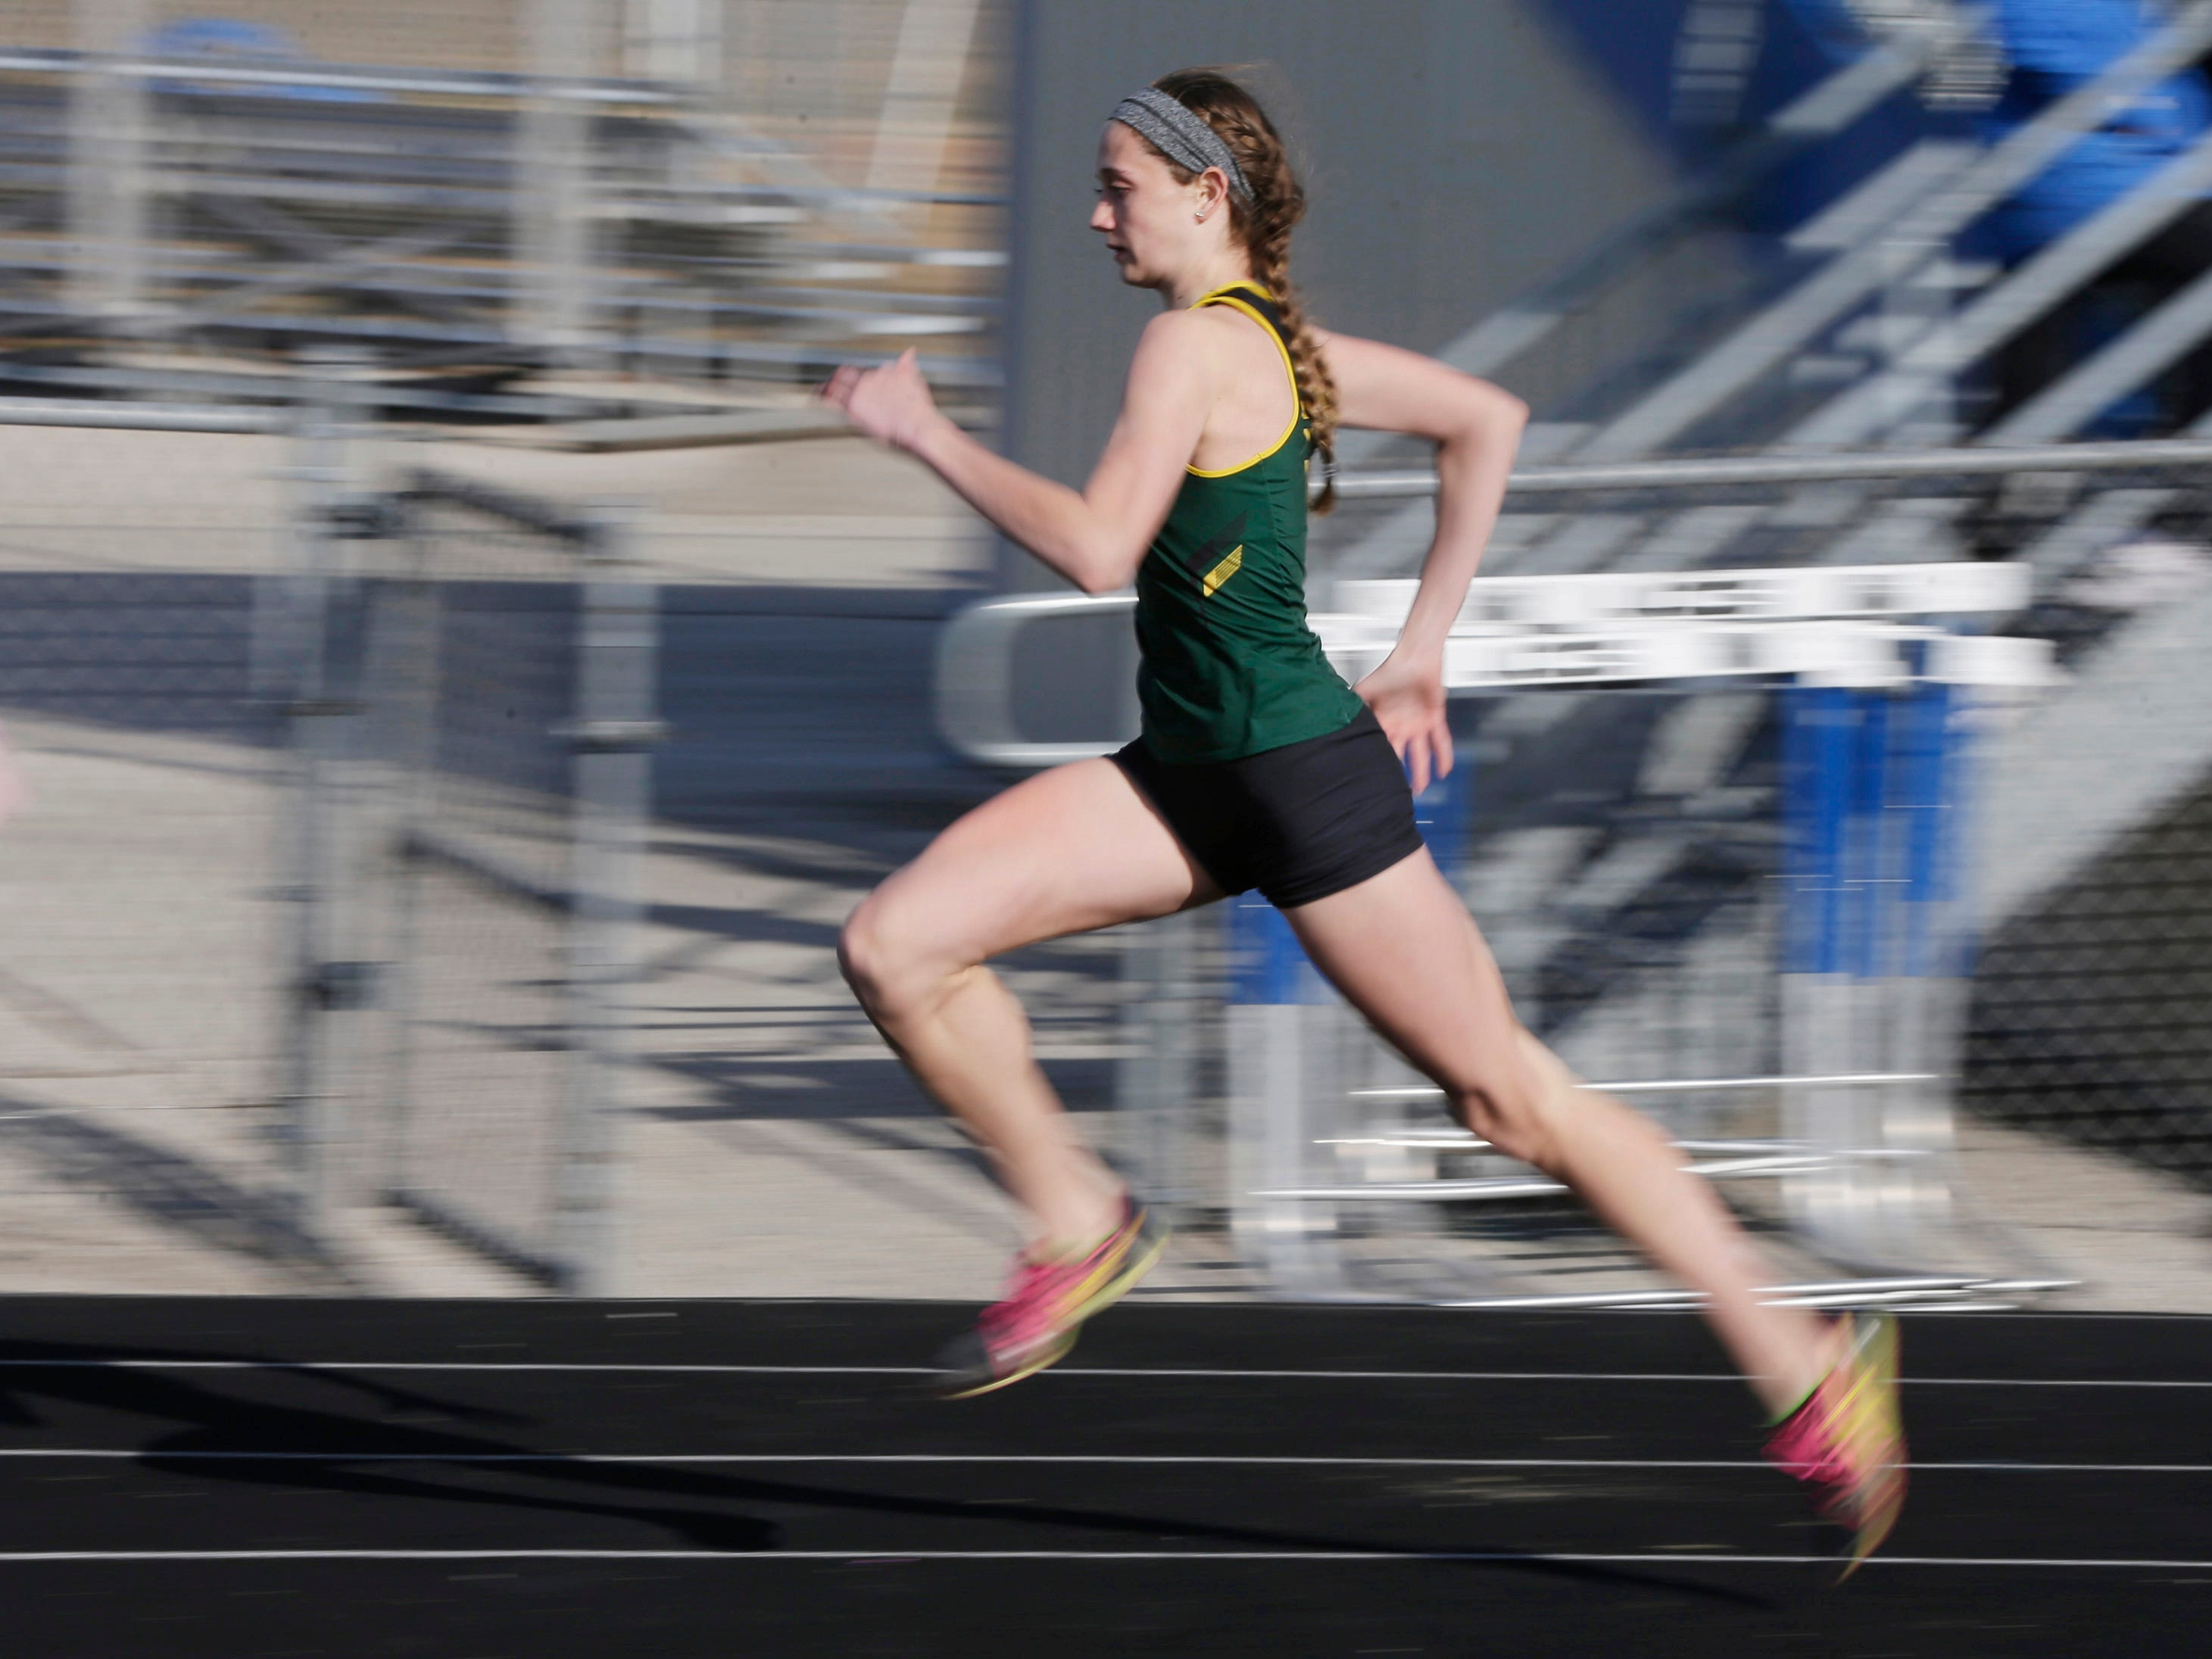 Sheboygan Lutheran's Carly Schreus is a blur of action during the Howards Grove track meet, Tuesday, April 9, 2019, in Howards, Wis.